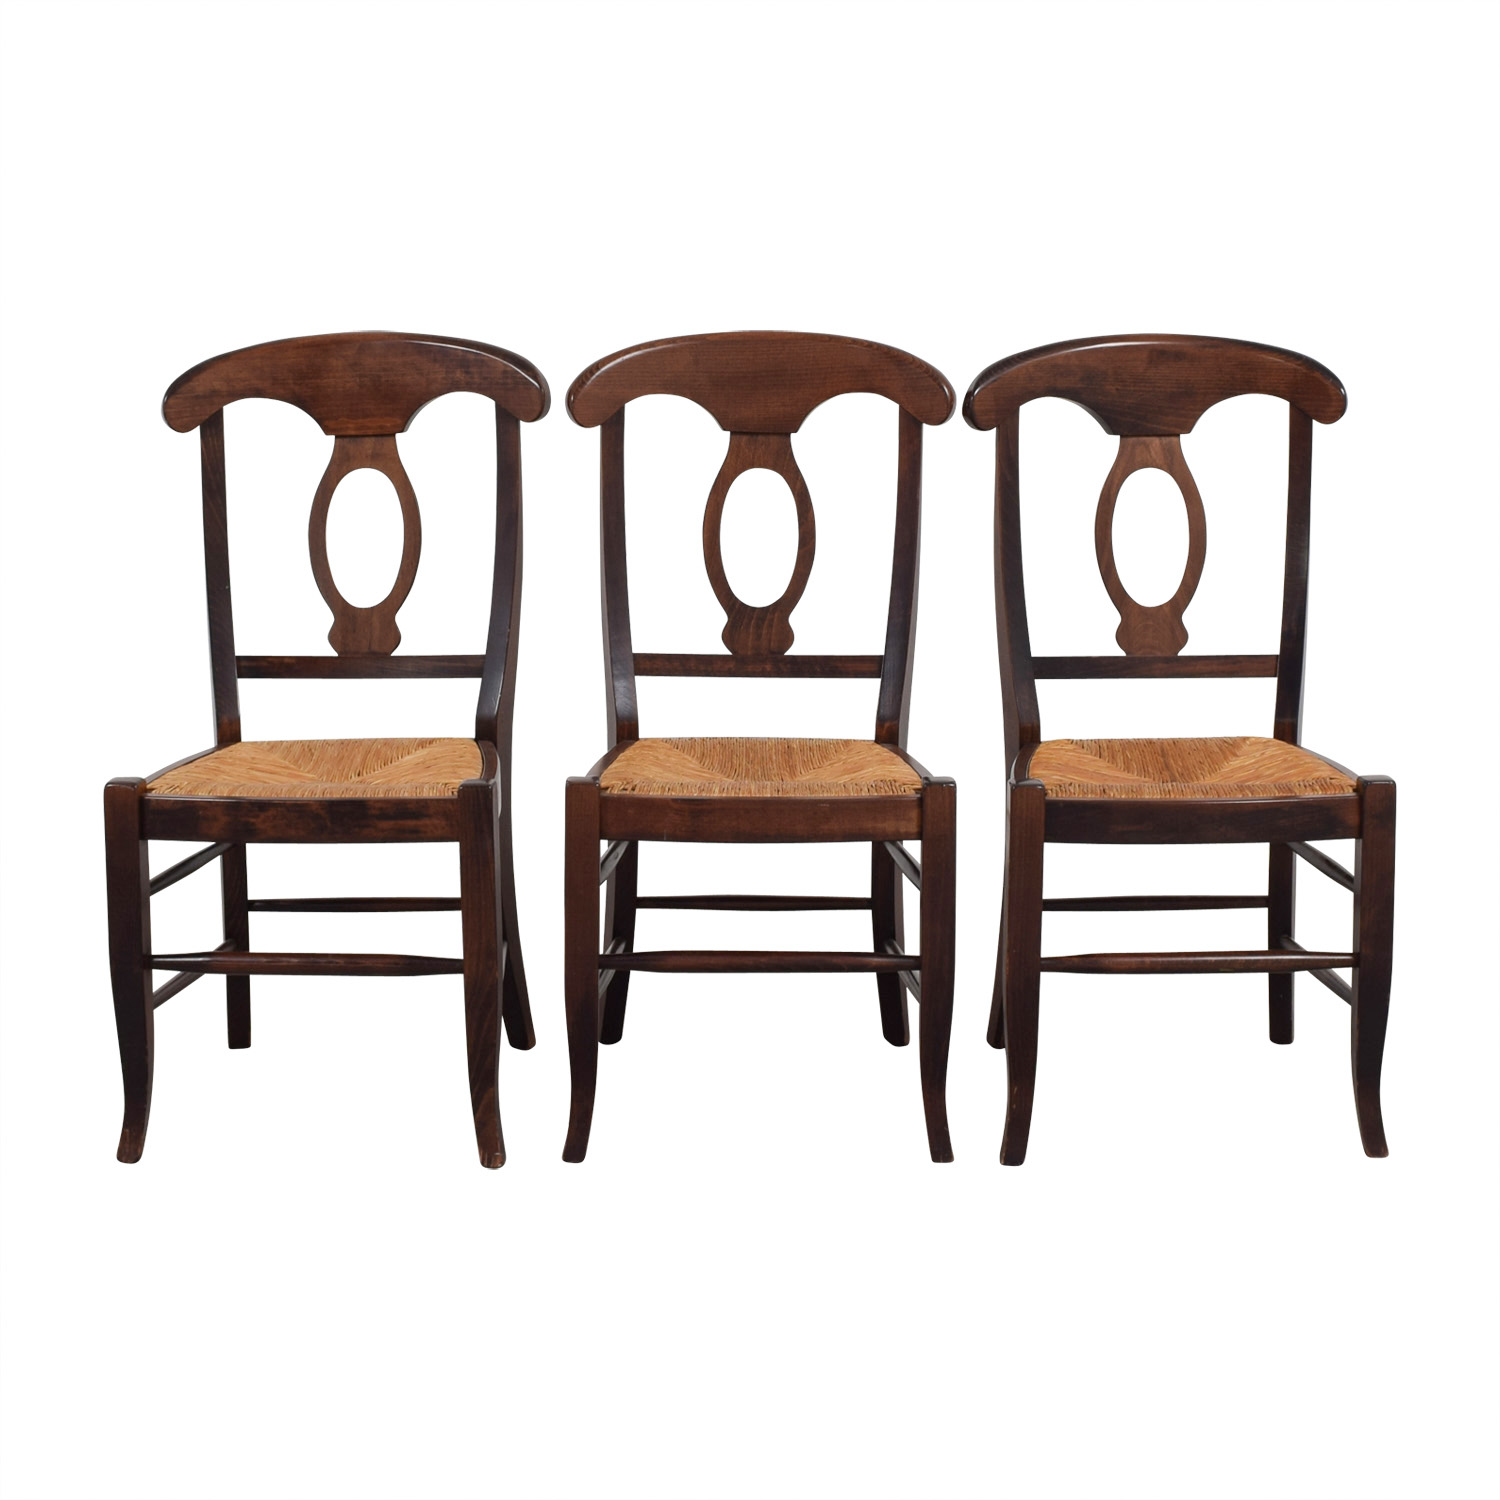 Pottery Barn Furniture Usa: Brand Chairs